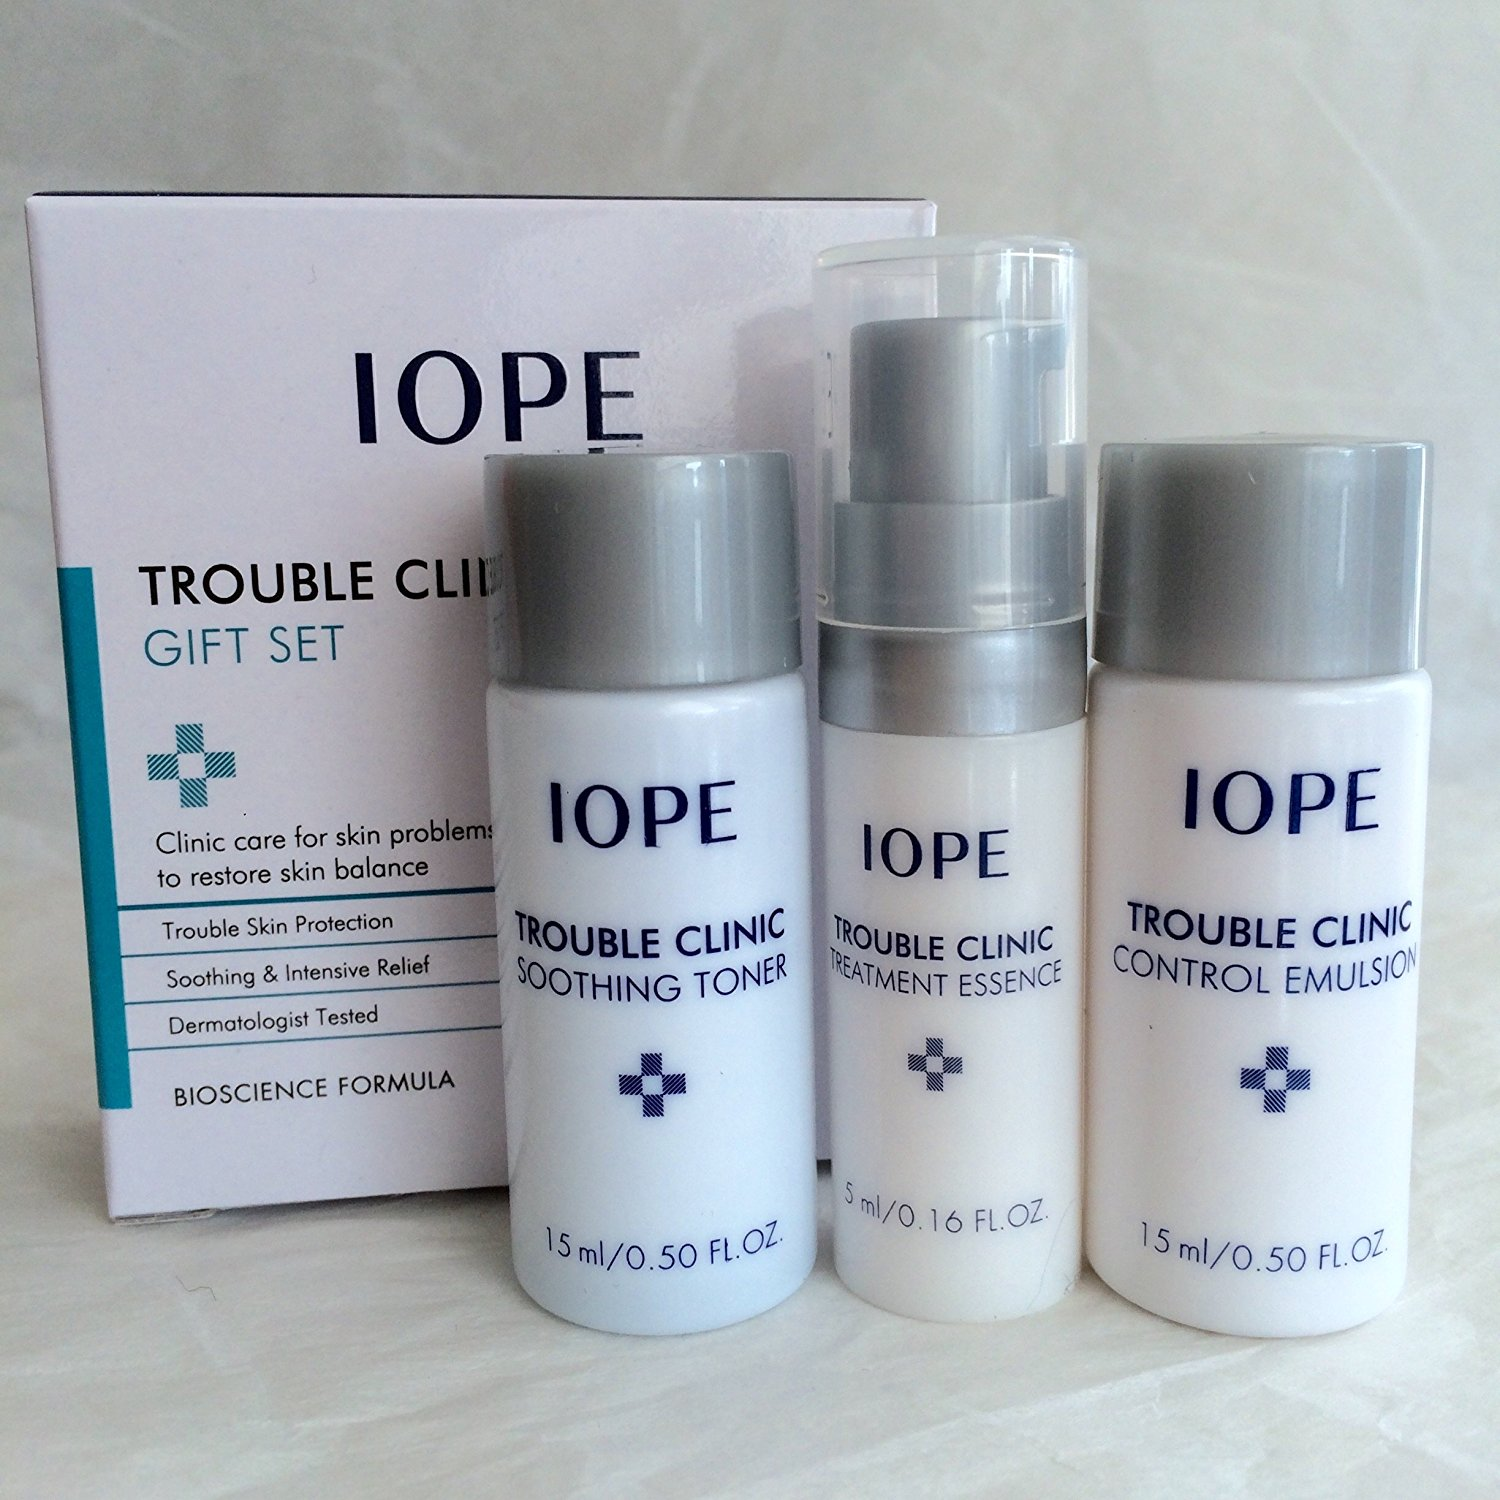 Iope Trouble Clinic Trial Kit (3 Items)